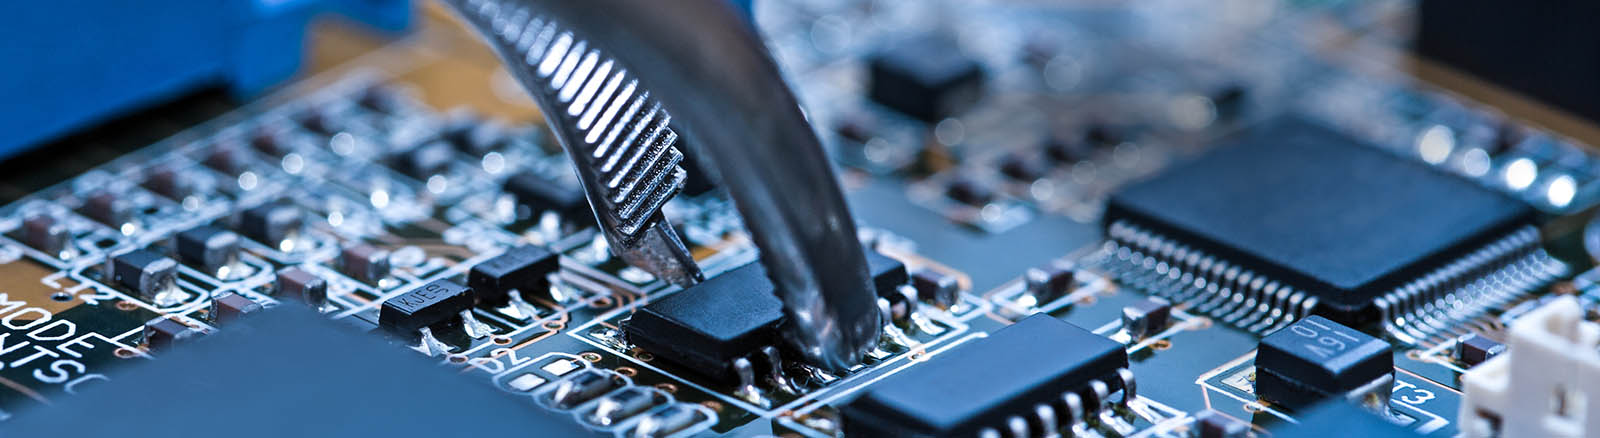 electronic component manufacturing